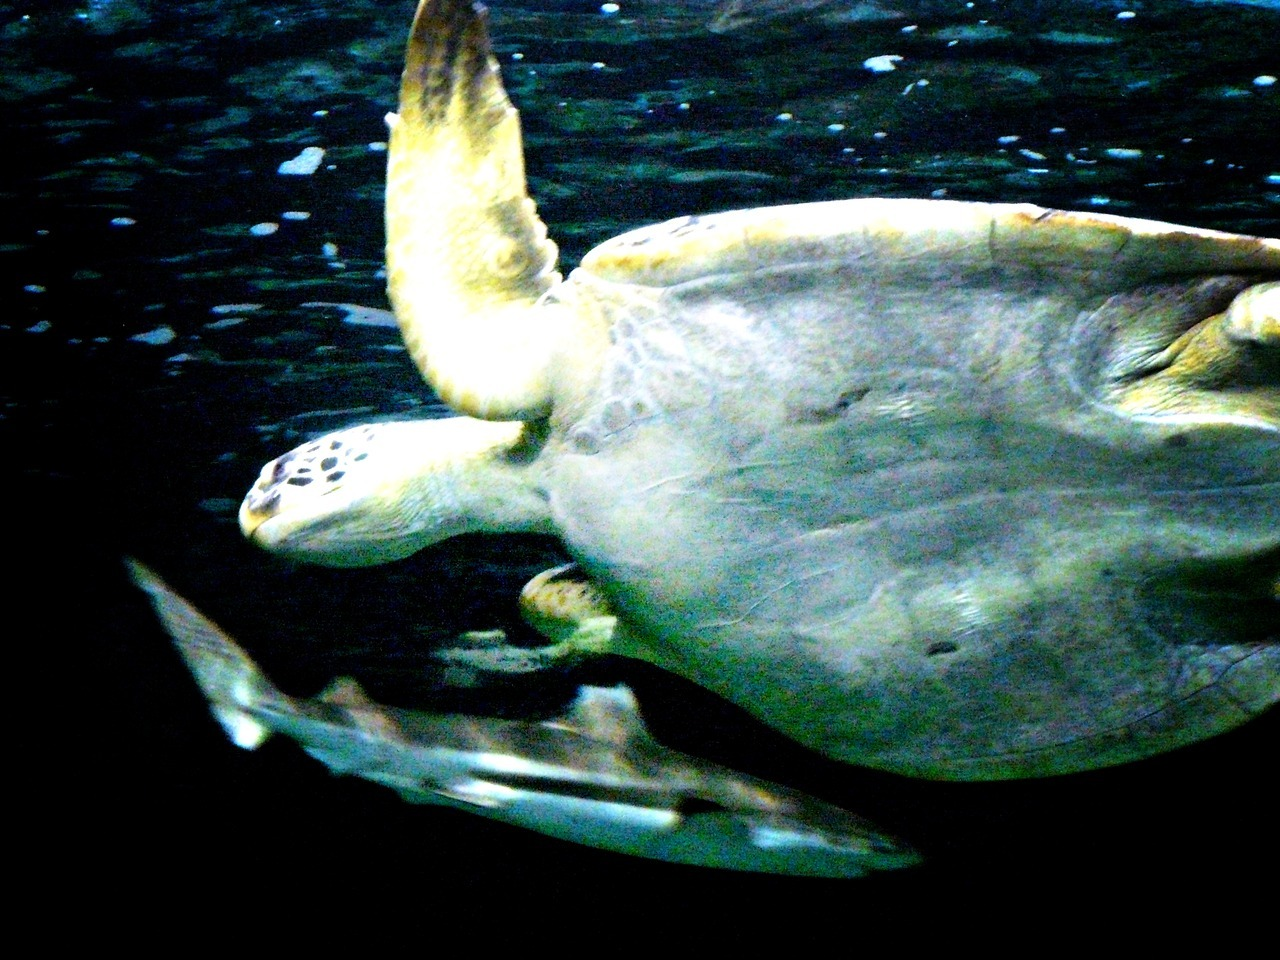 - Turtle And Shark - I know people who like creatures of the sea.